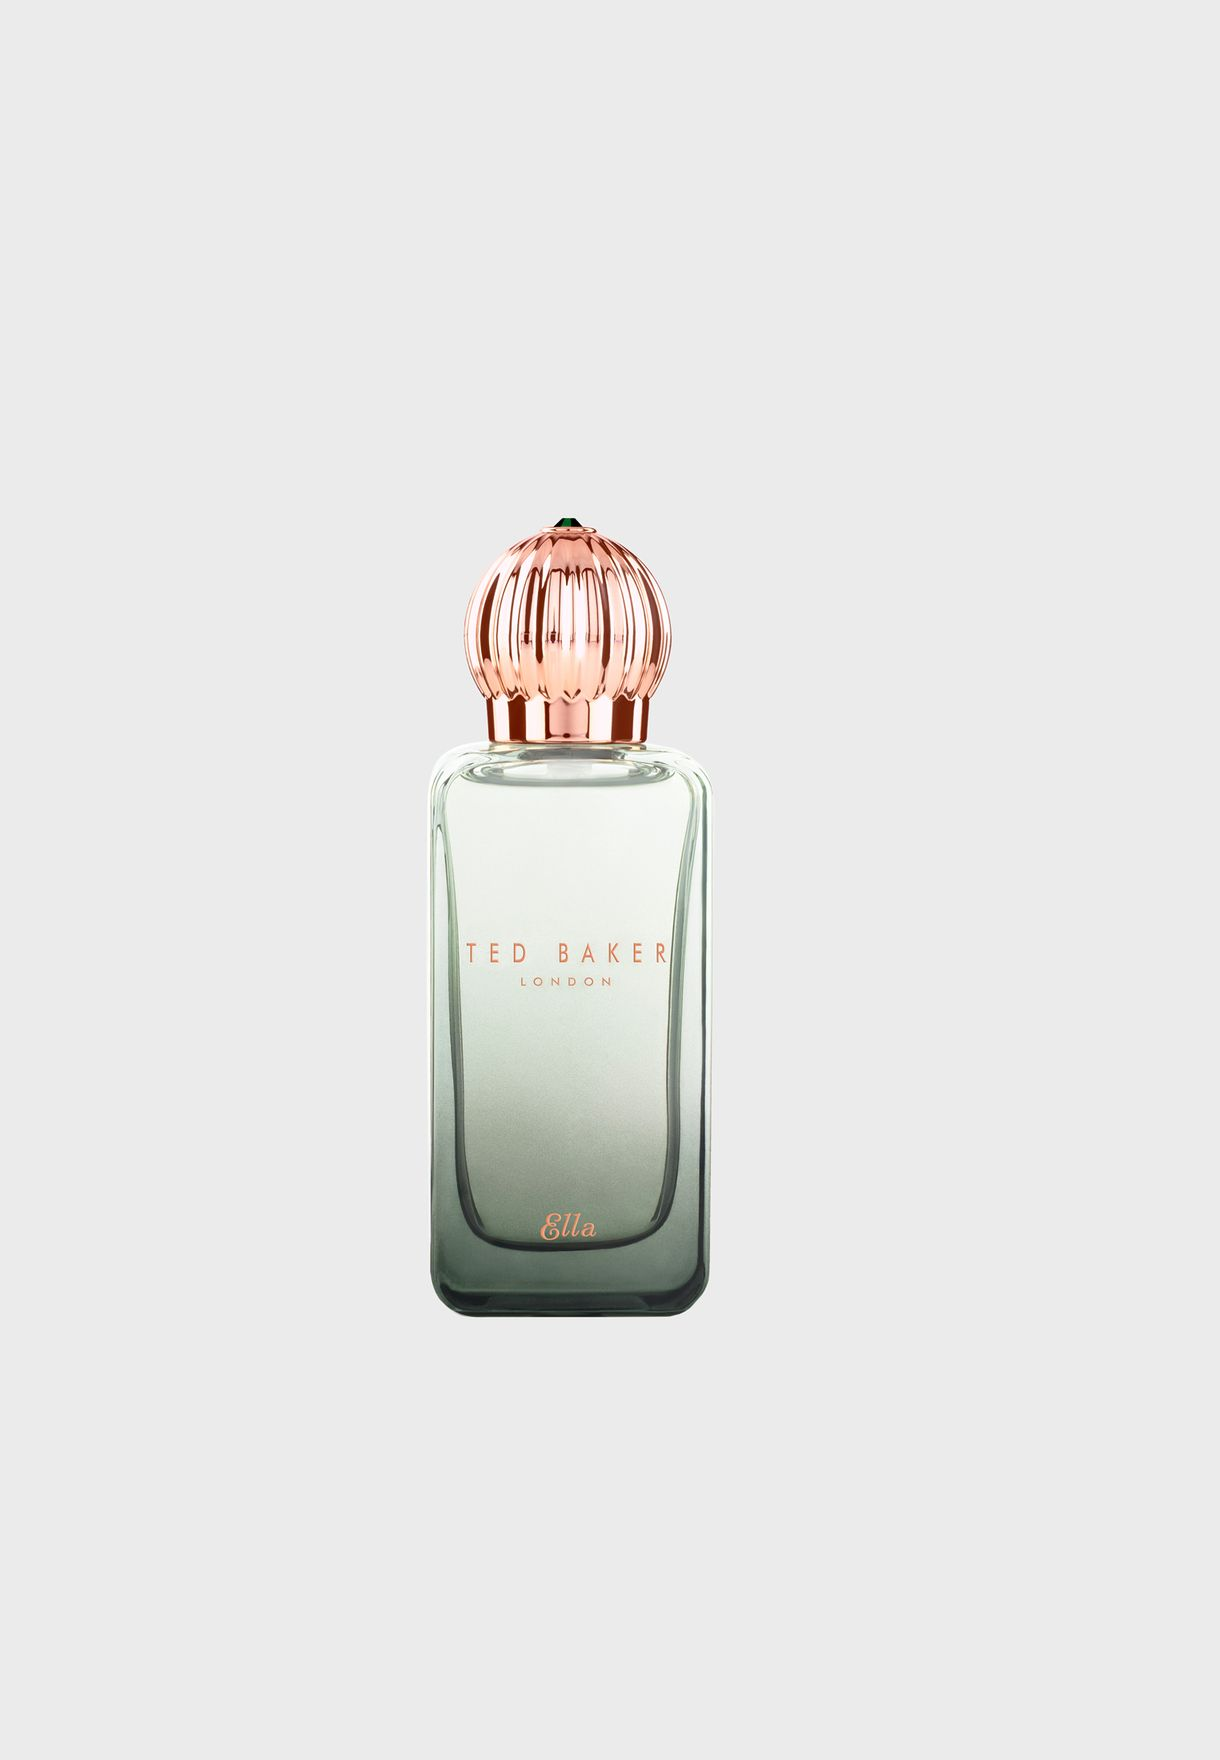 Ted Baker Sweet Treats Ella Eau de Toilette 30ml